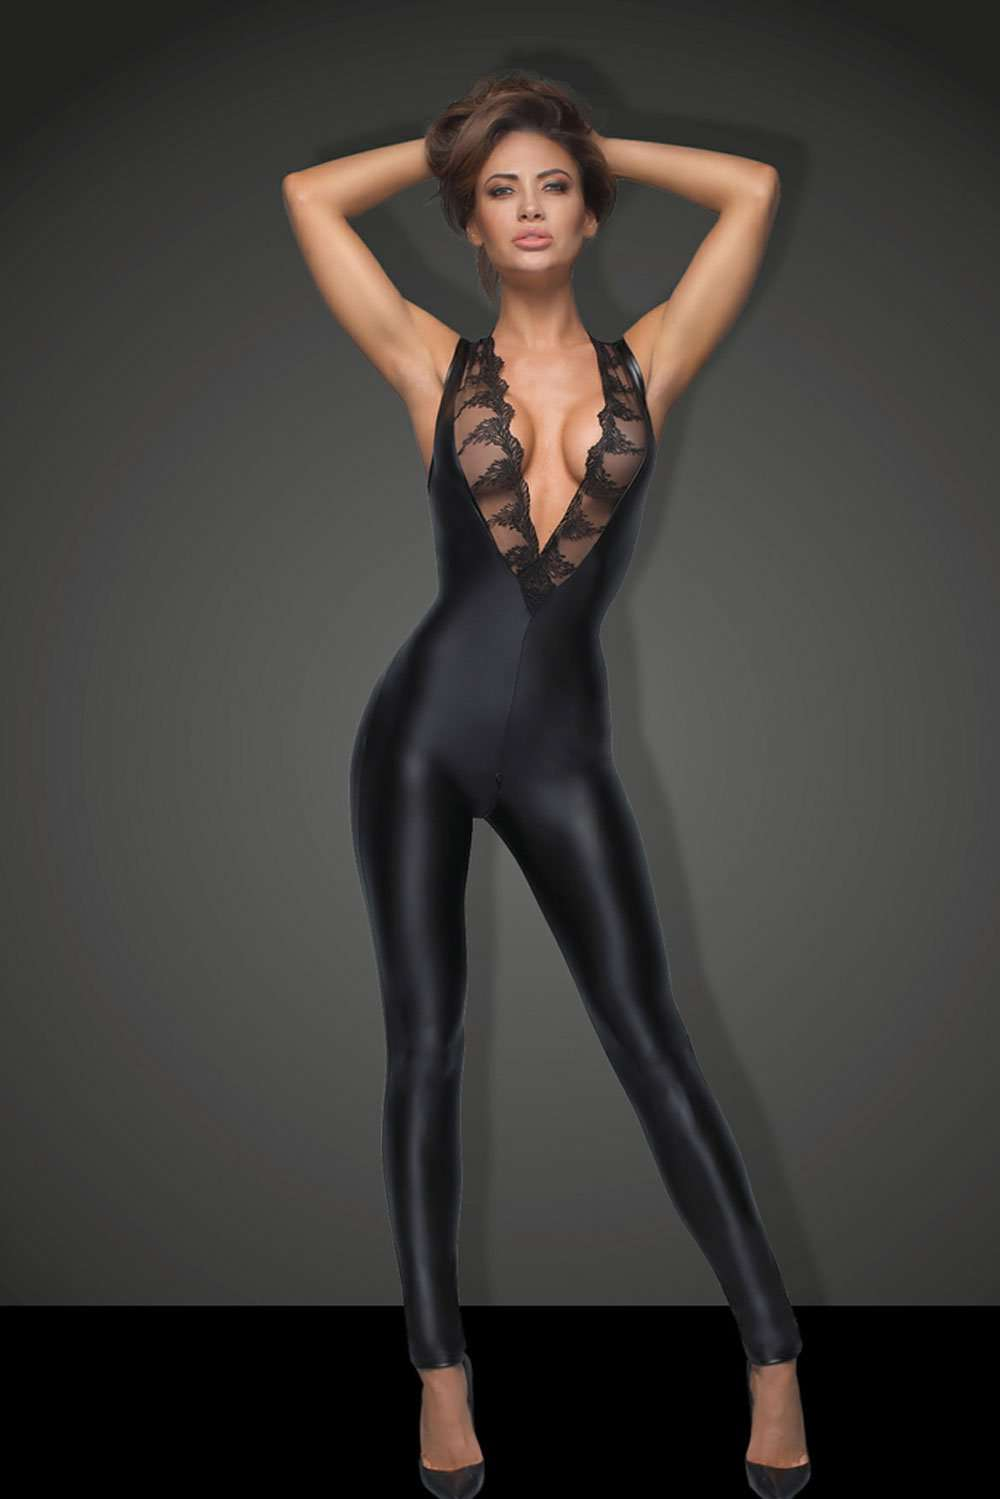 Noir Handmade Catsuit With 2-Way Zip